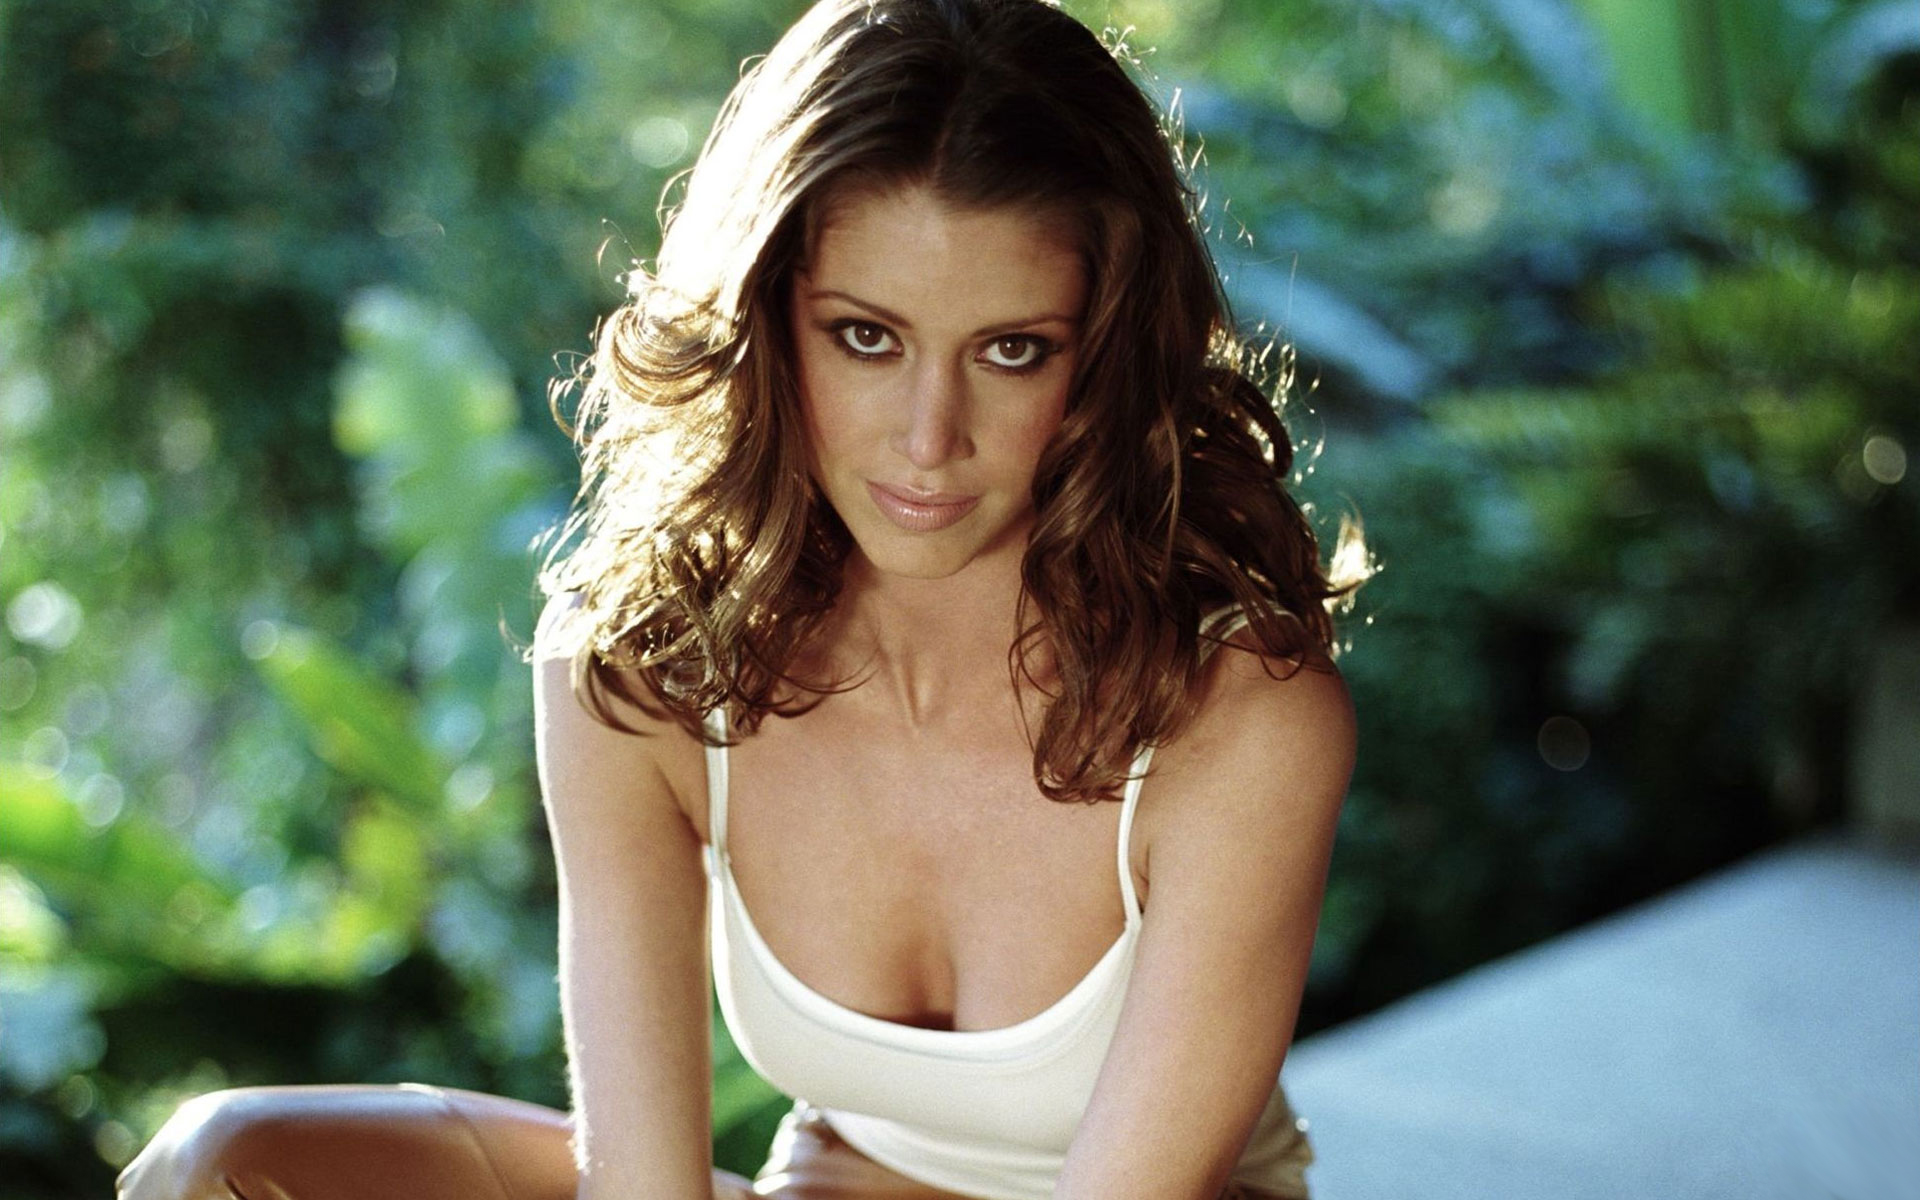 Christopher Allport Wallpapers Shannon Elizabeth HD Wallpapers for desktop download